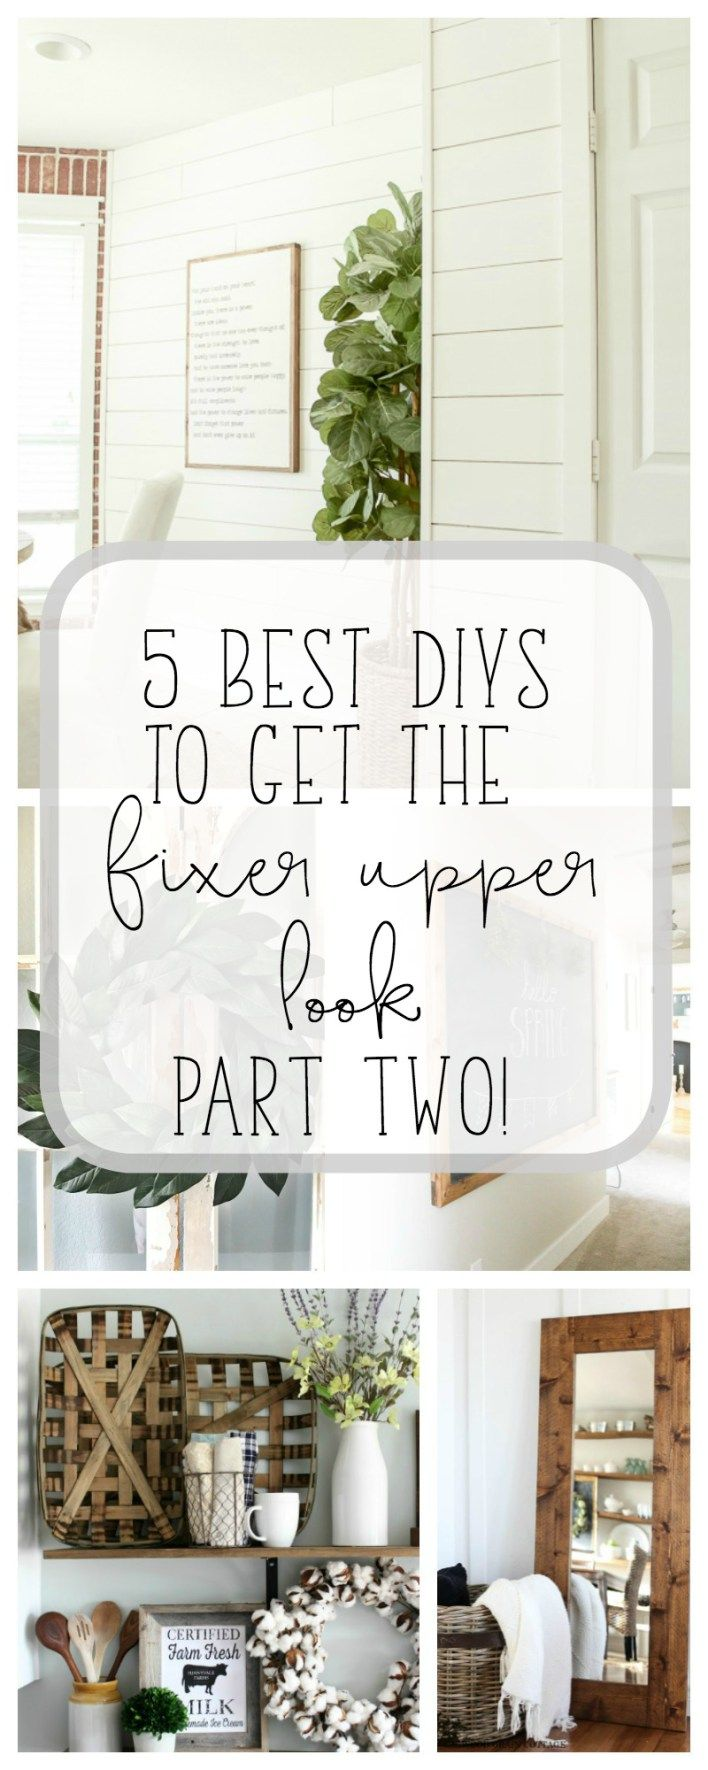 5 Best DIYs to get the Fixer Upper Look - Part Two! - Making Joy and Pretty Things